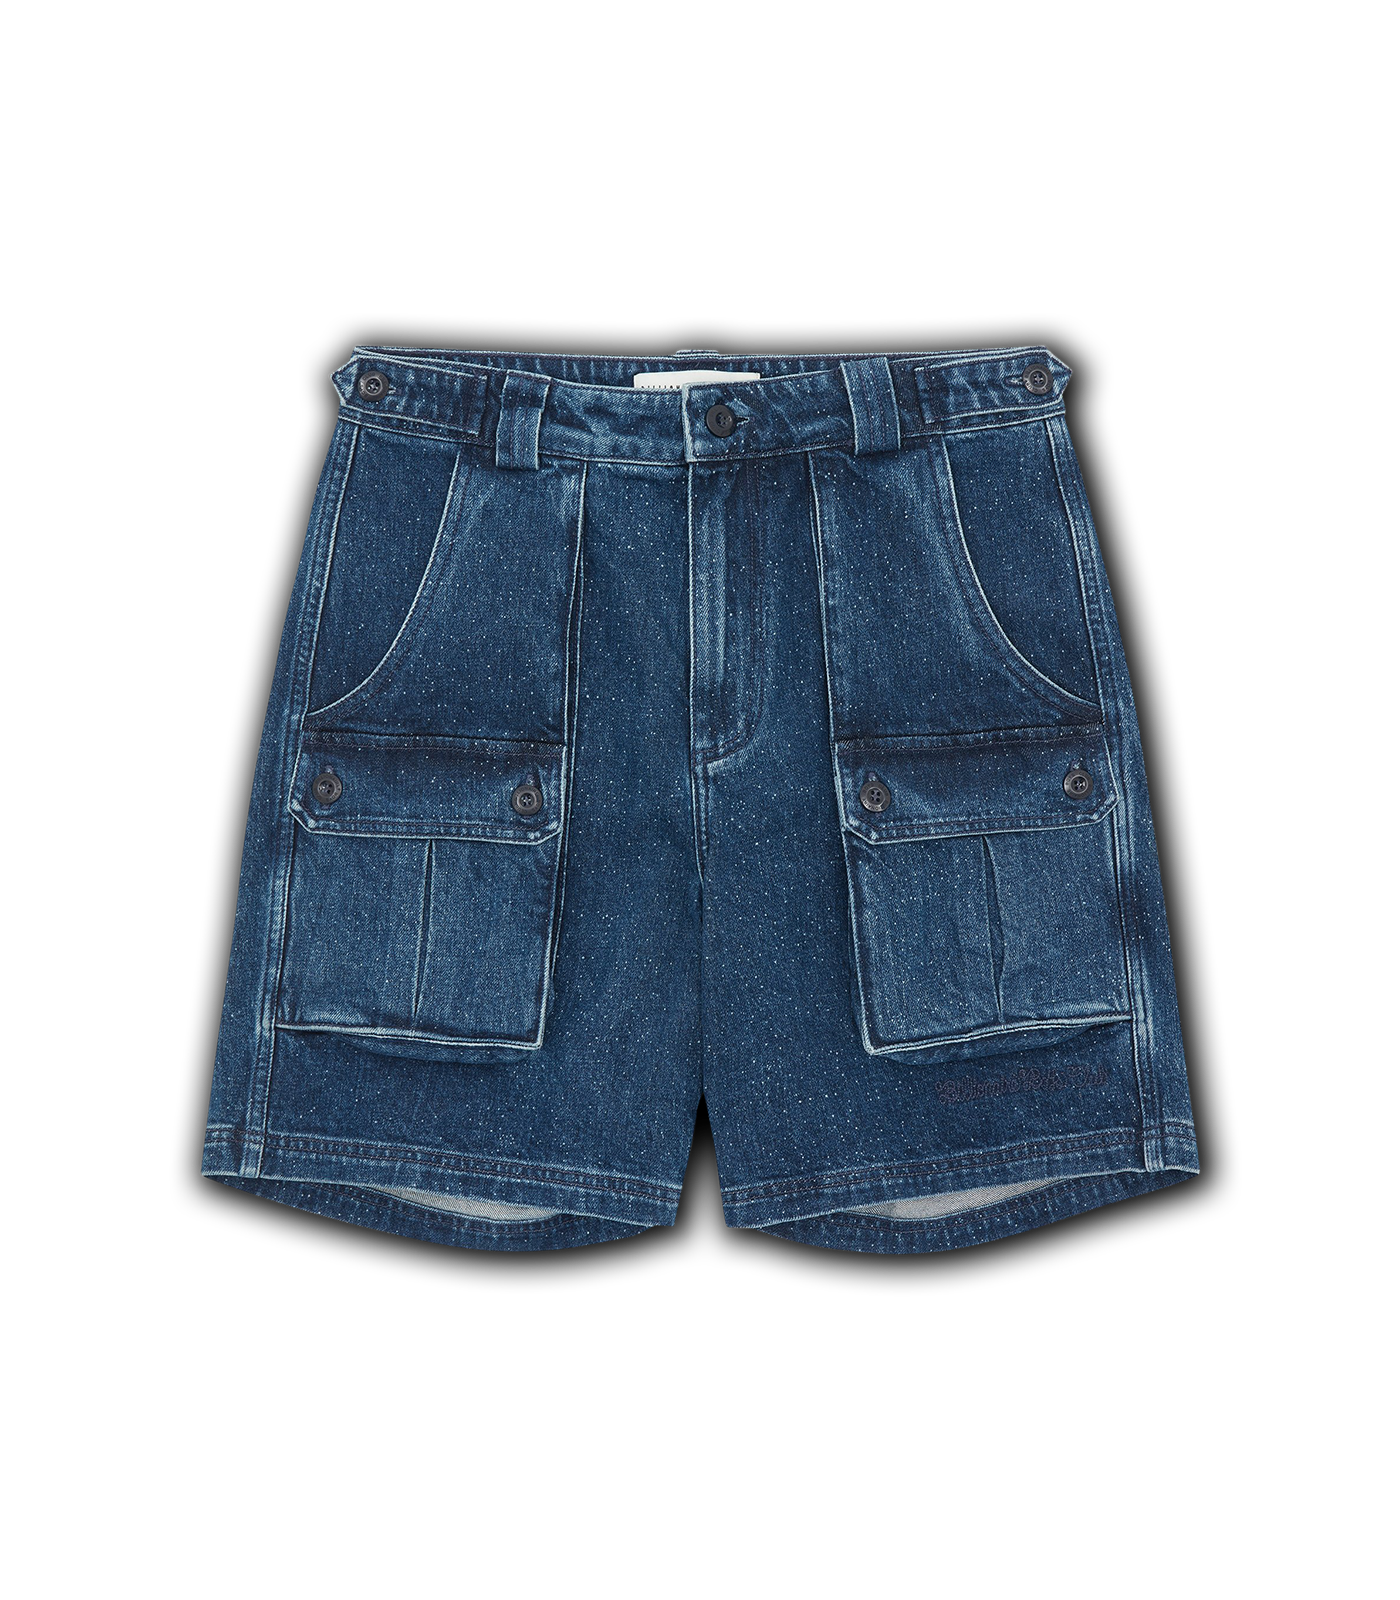 MULTI POCKET DENIM SHORTS - BLUE